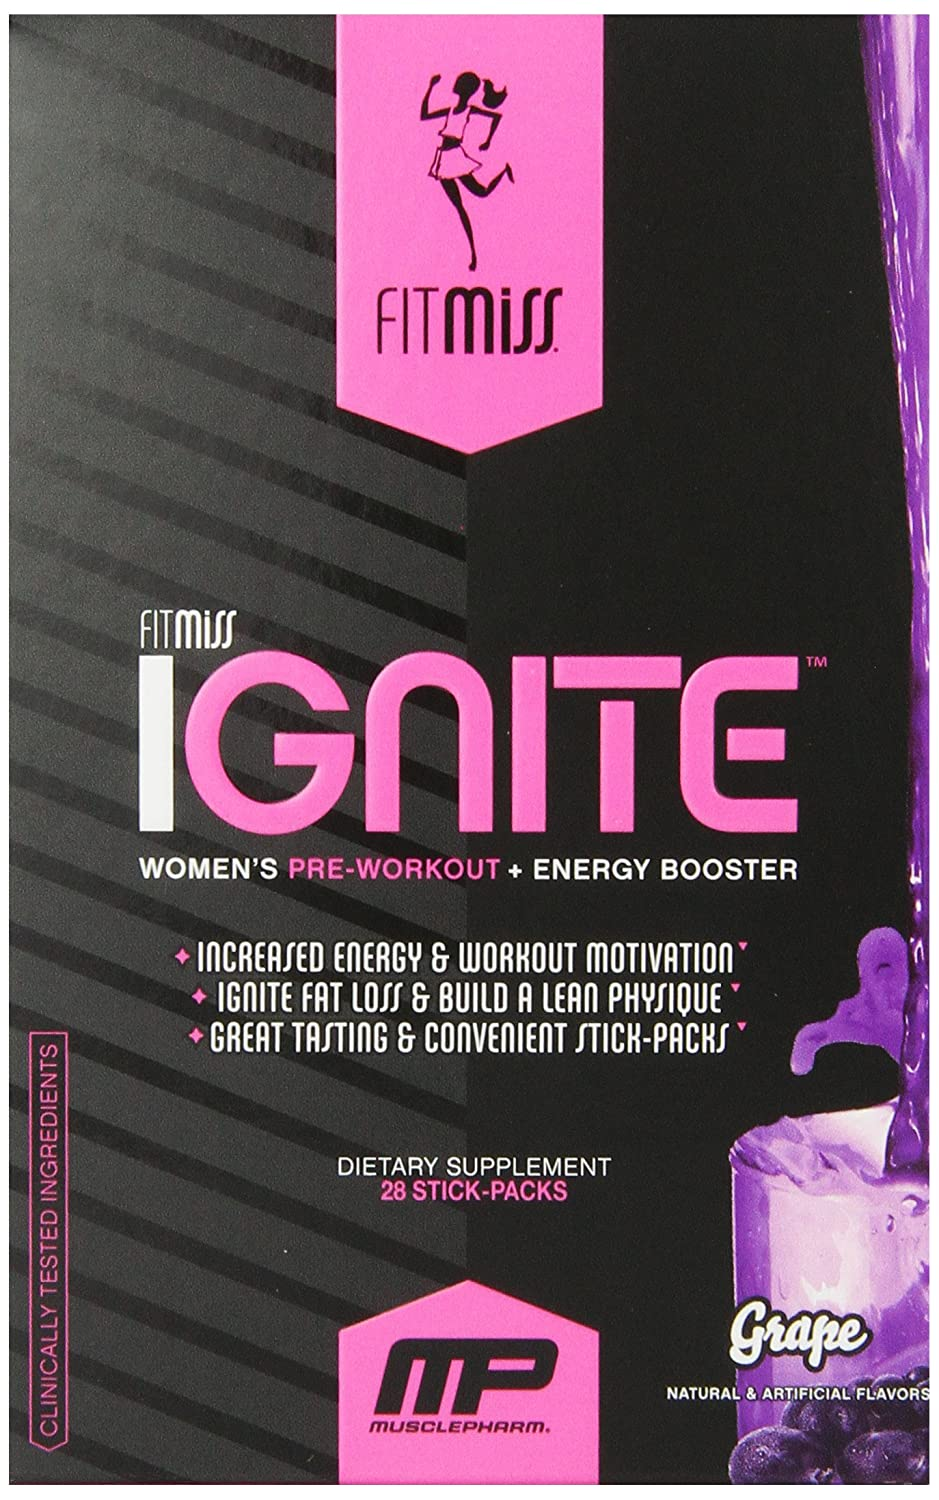 fitmiss ignite pre workout